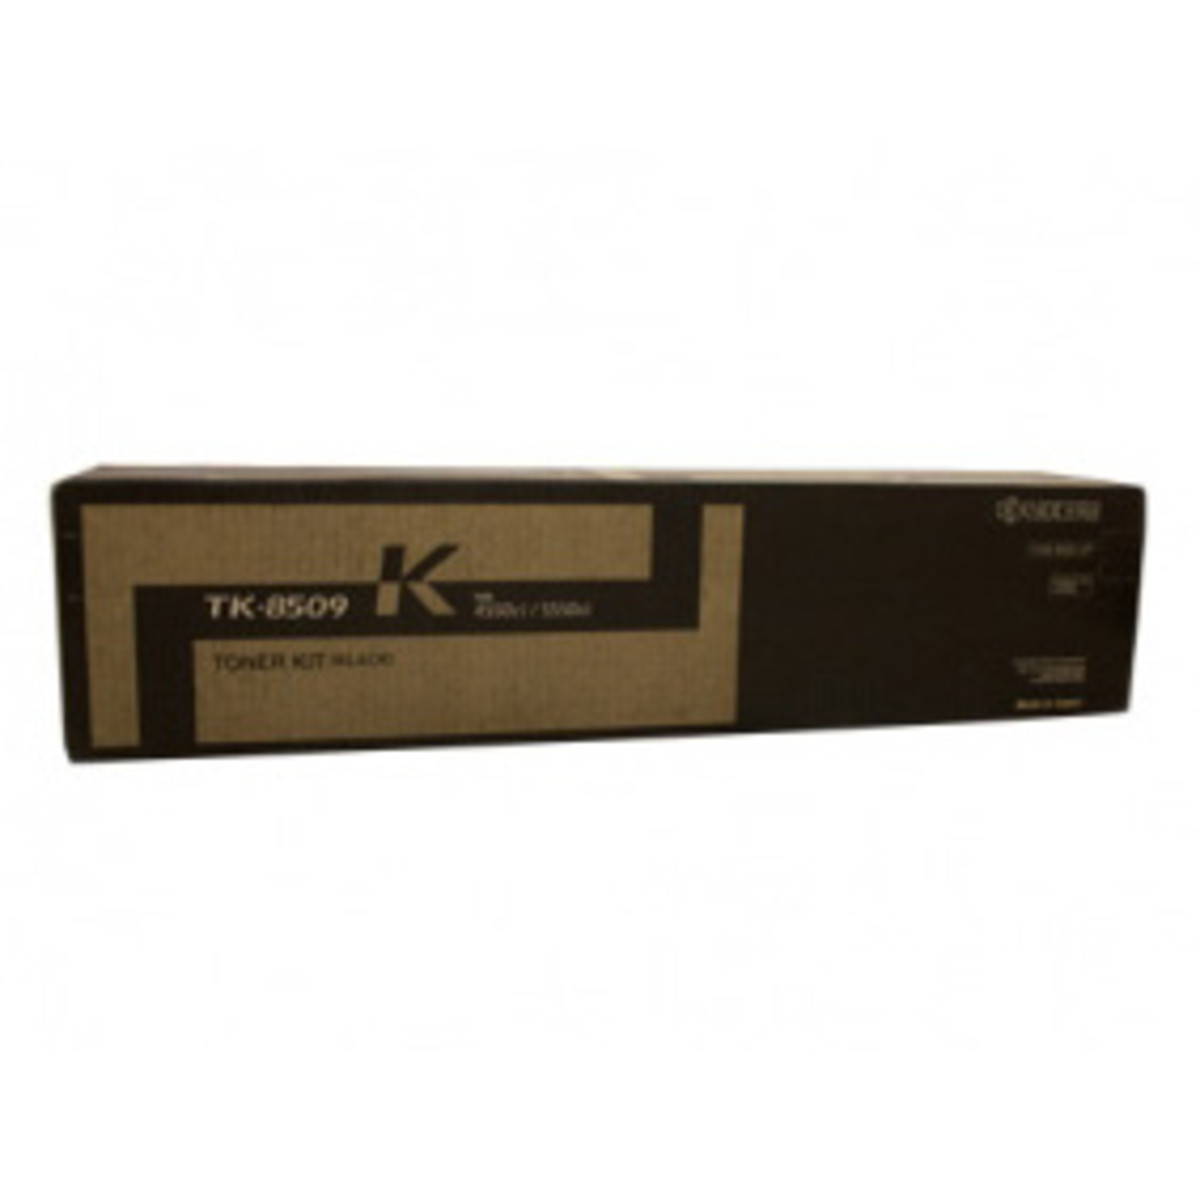 Kyocera TK-8509K Black Toner Cartridge